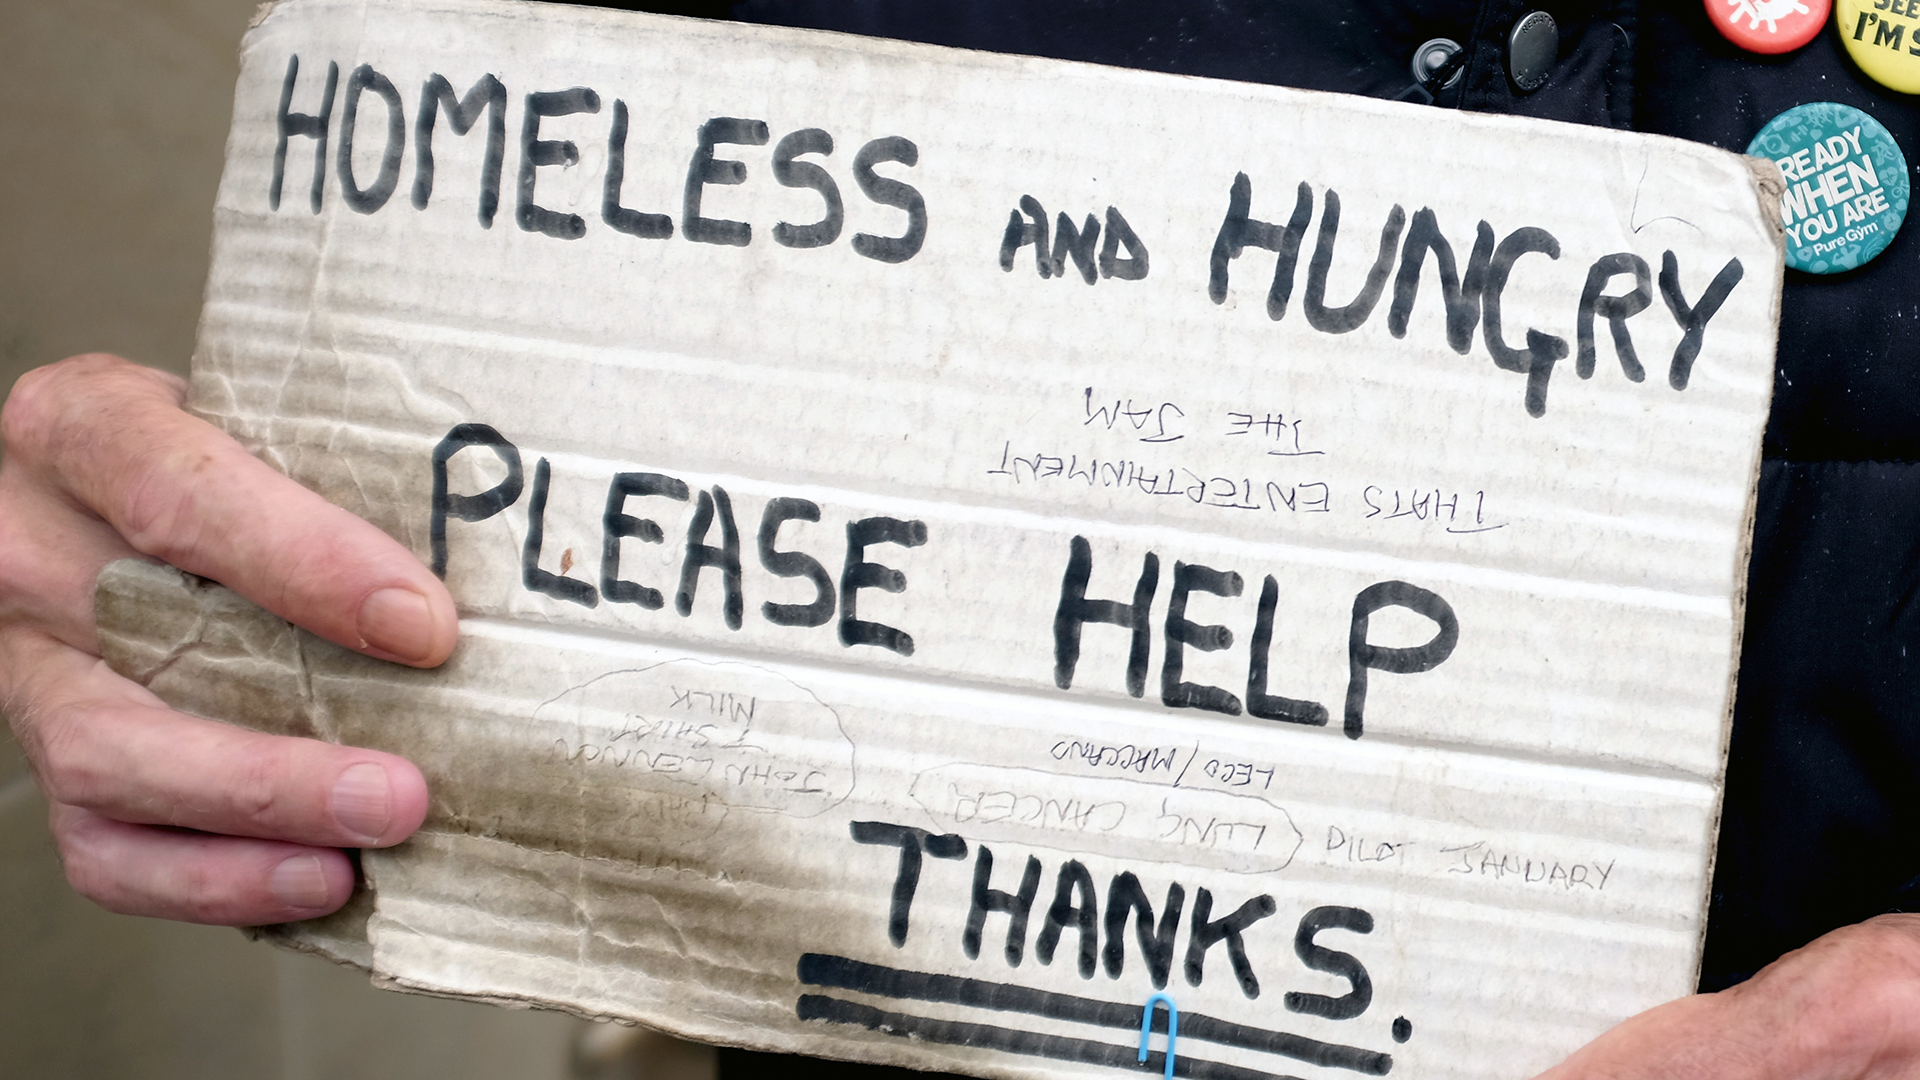 Holding a homeless sign-159532.jpg25022004